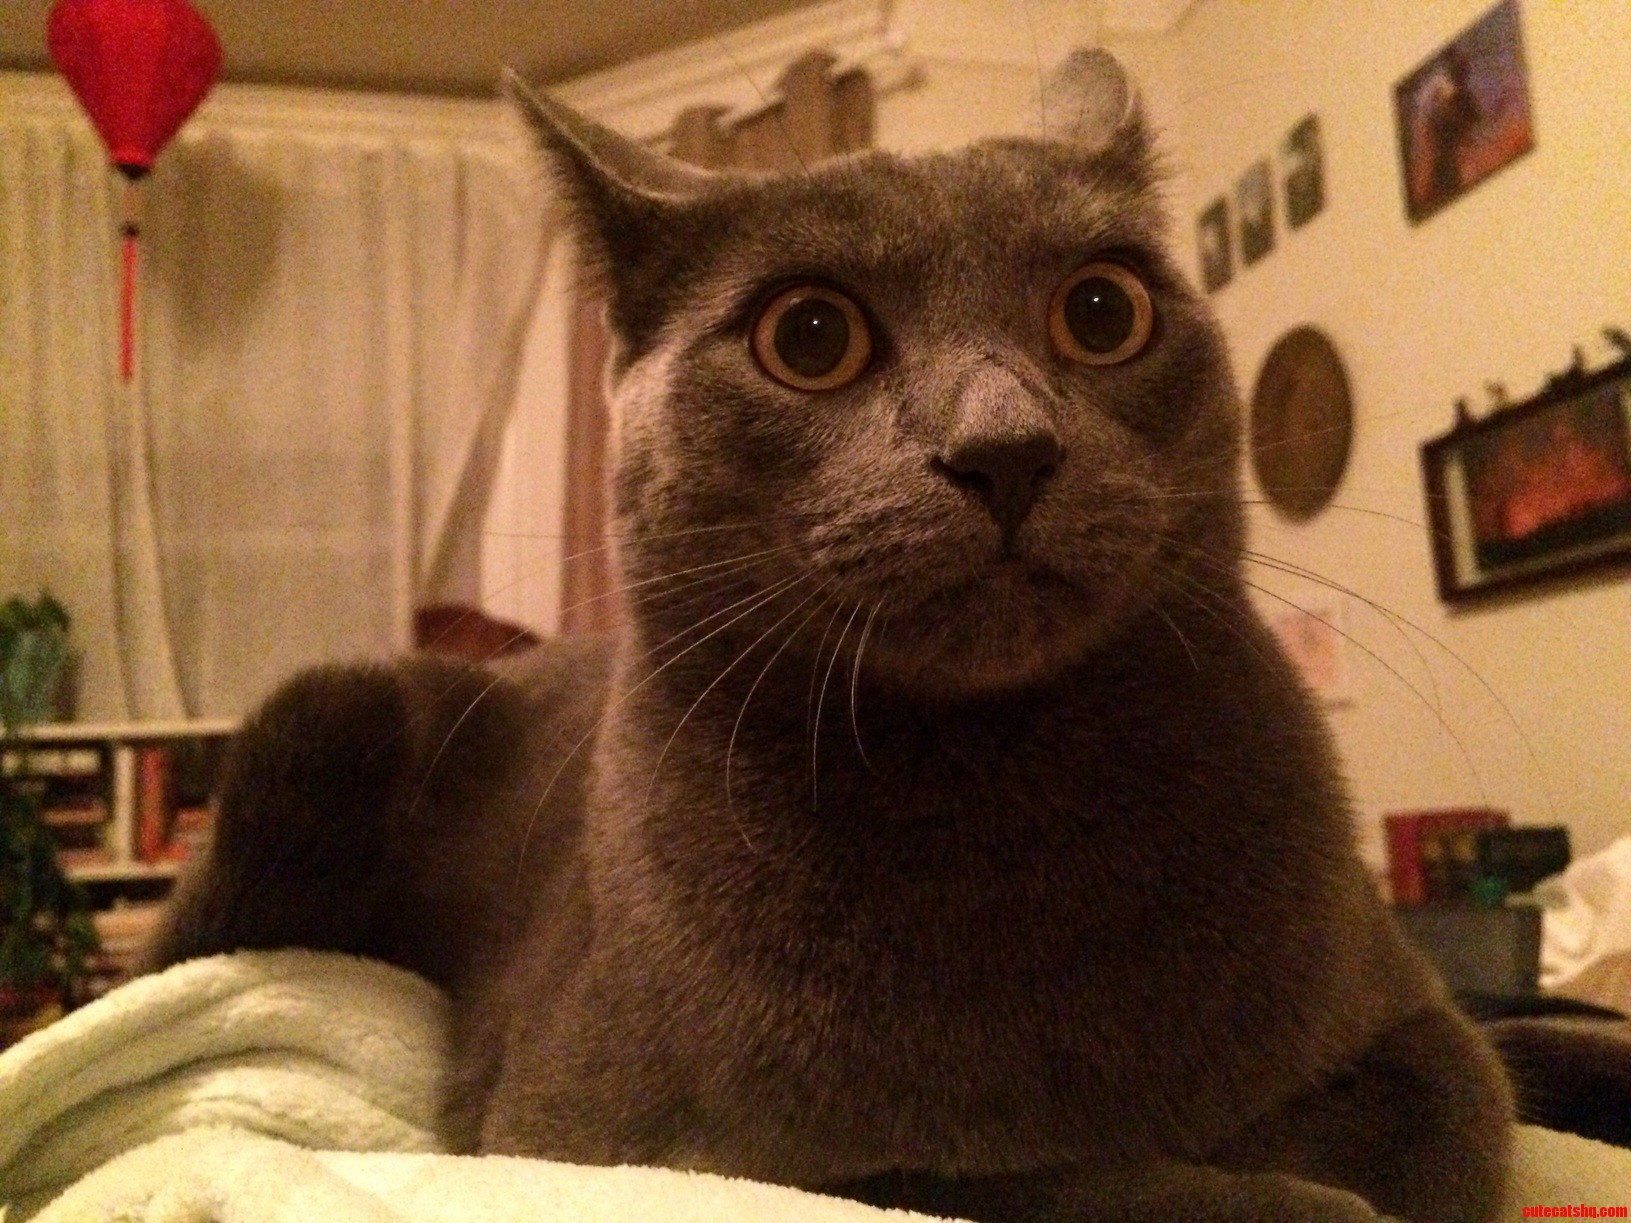 My cats face when new years eve fireworks began.